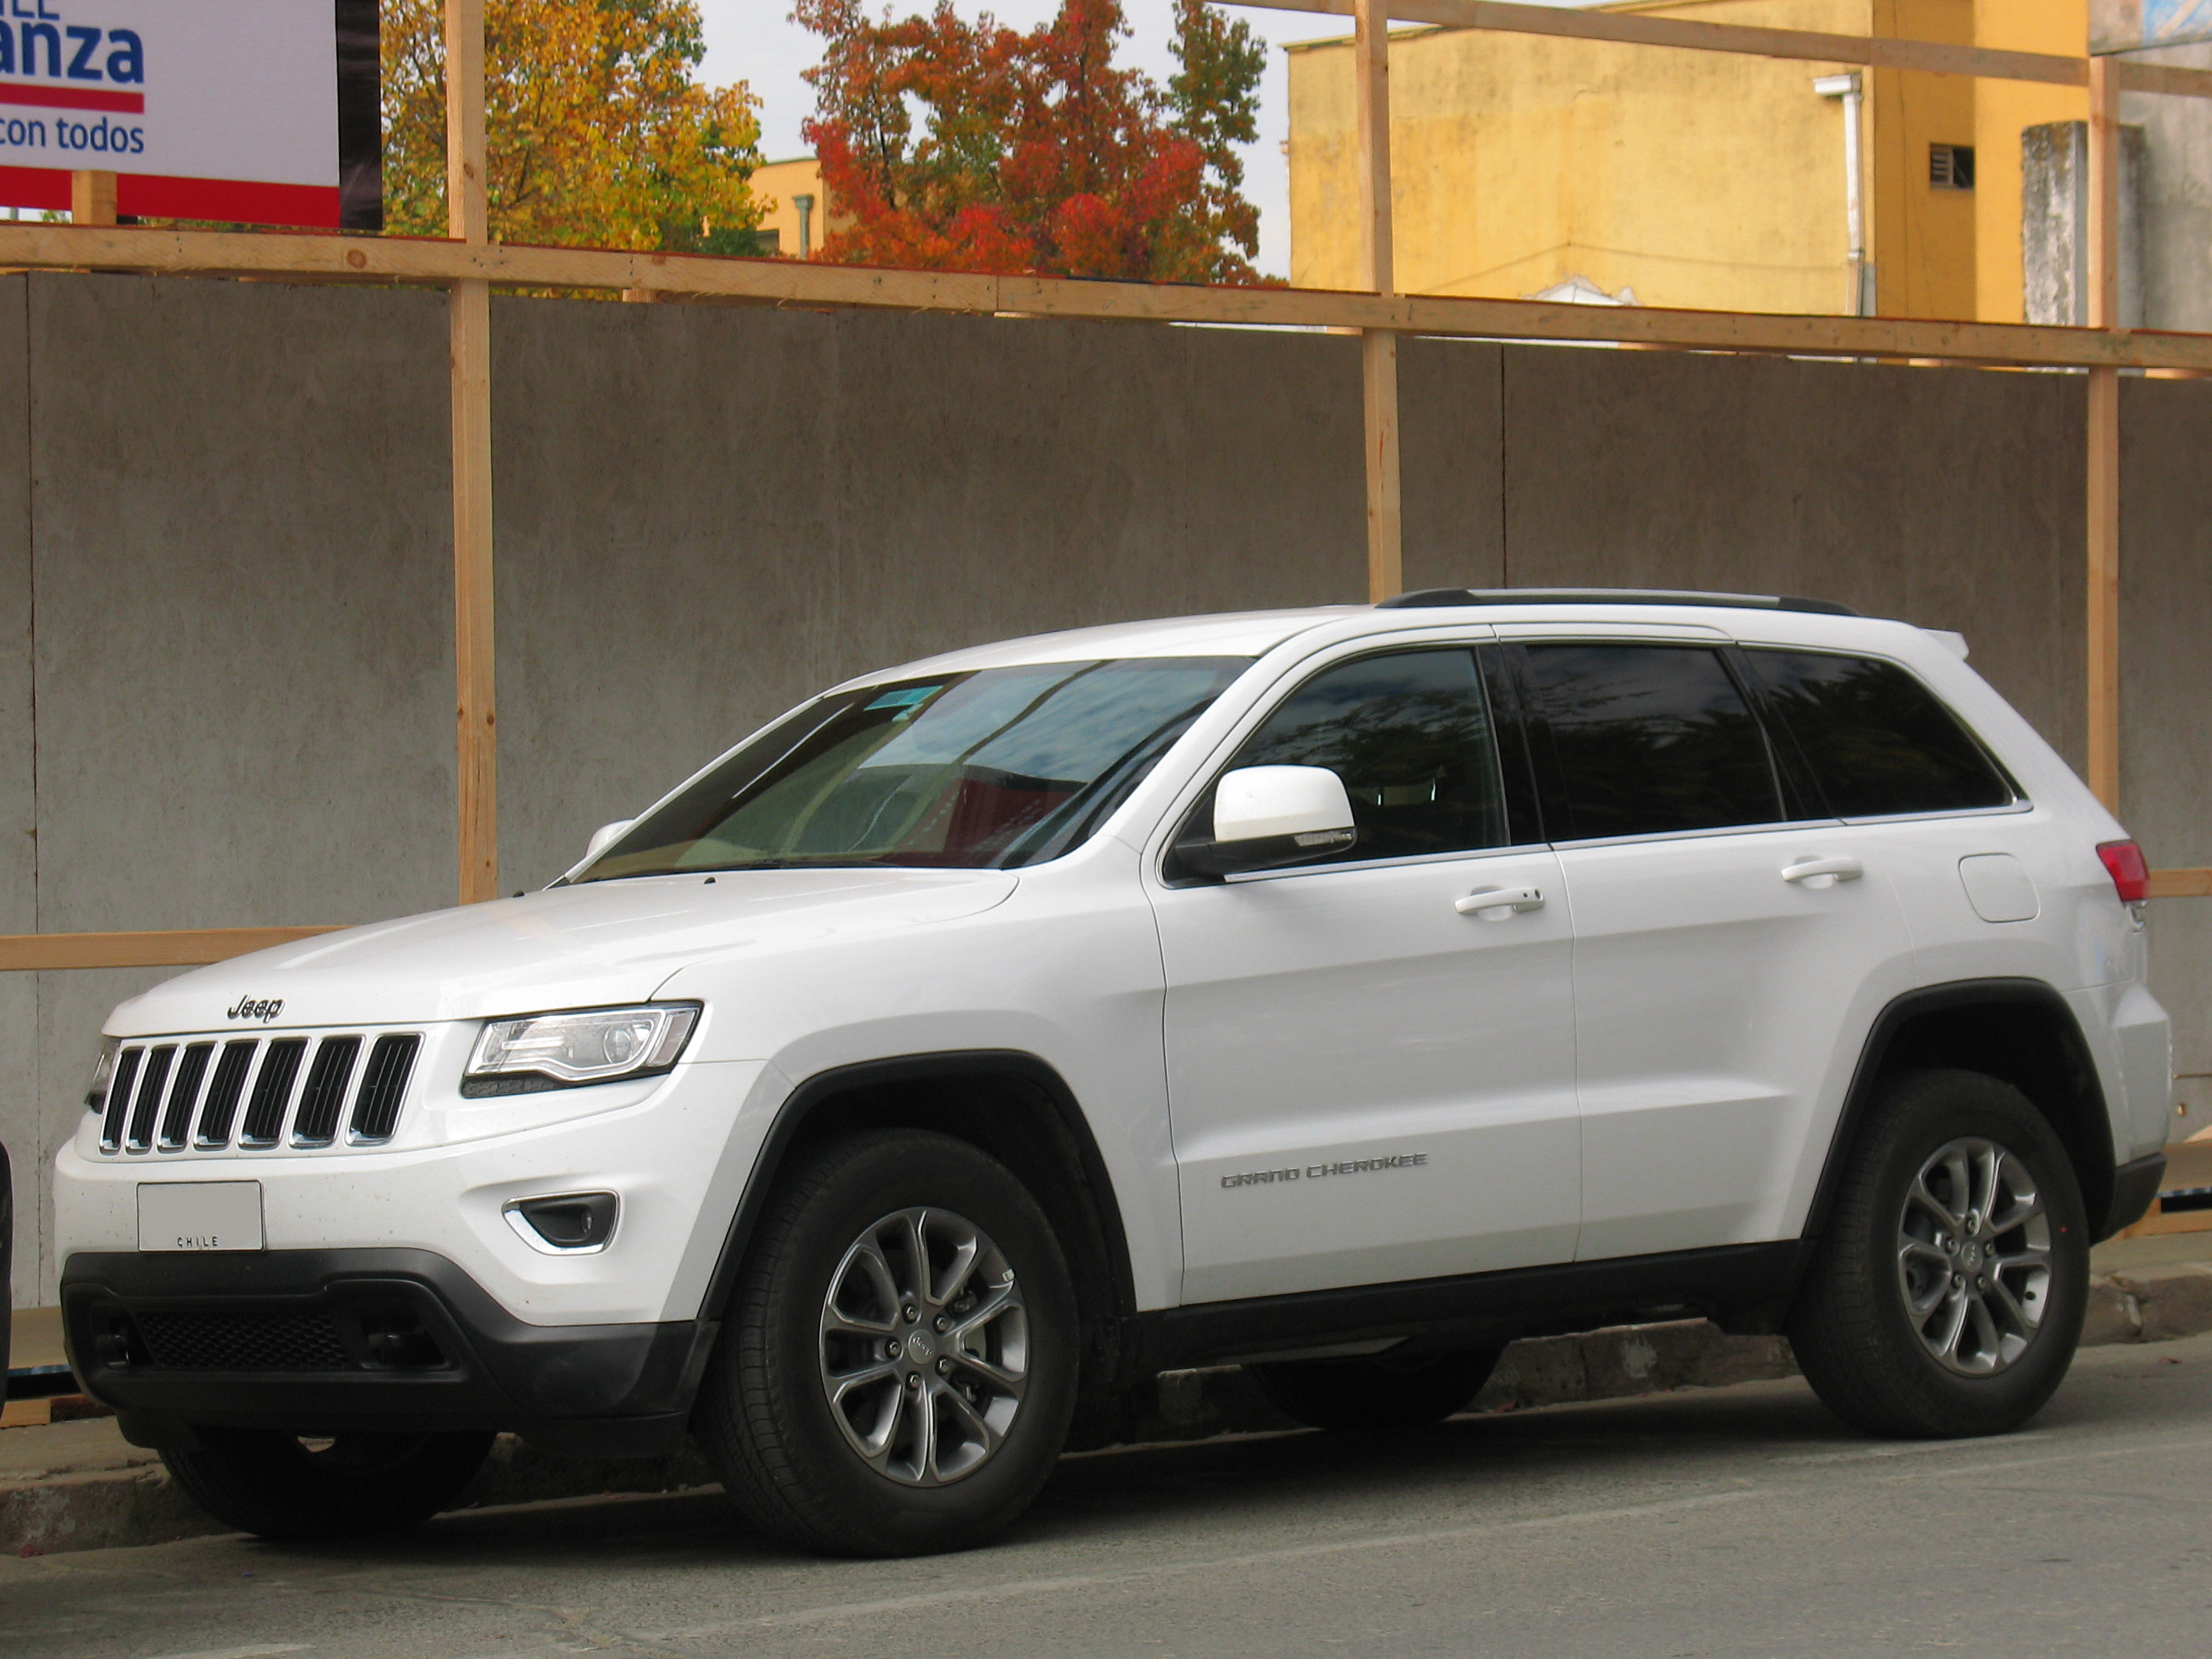 Awesome File:Jeep Grand Cherokee 3.0 CRD Laredo 2014 (14924759240)